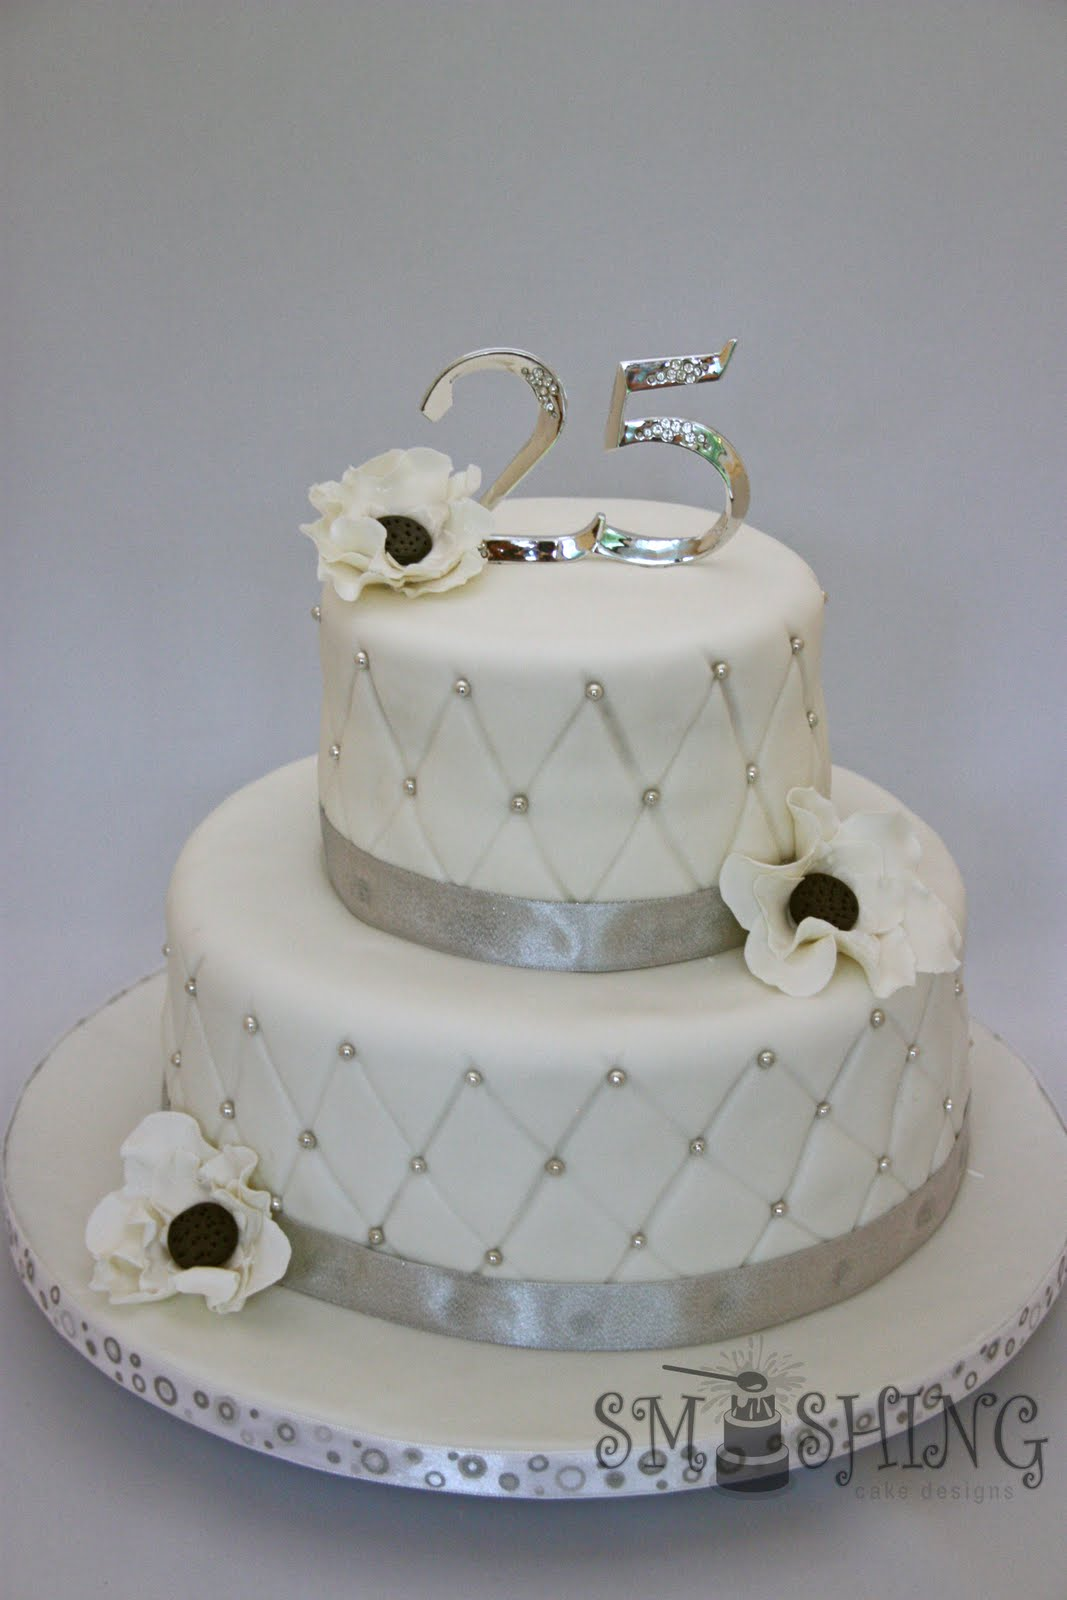 Wedding Anniversary Cake Design Ideas : Smashing Cake Designs: Silver Anniversary